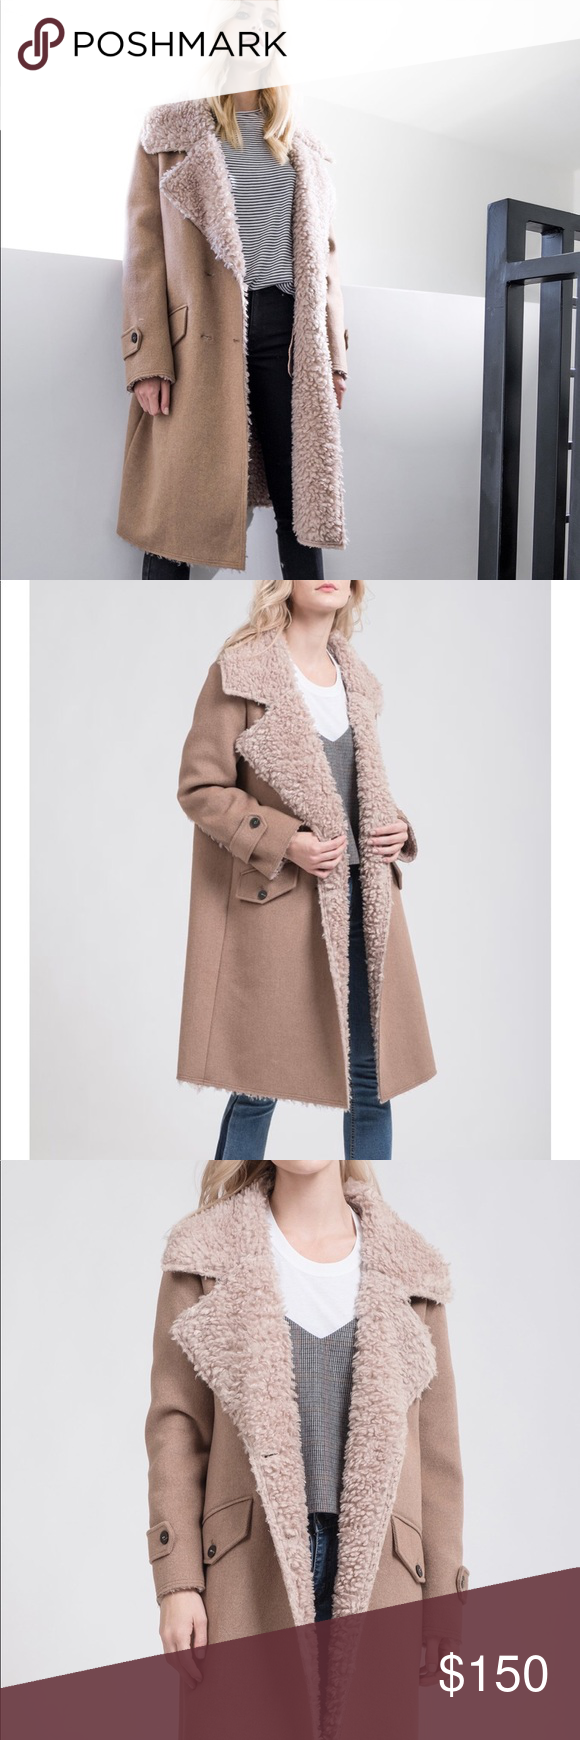 ✖️RESERVED✖️ J.O.A. FAUX FUR SHEARLING COAT FAUX FUR SHEARLING COAT. TAN. SIZE SMALL. NWT. NEW! J.O.A. Jackets & Coats Trench Coats